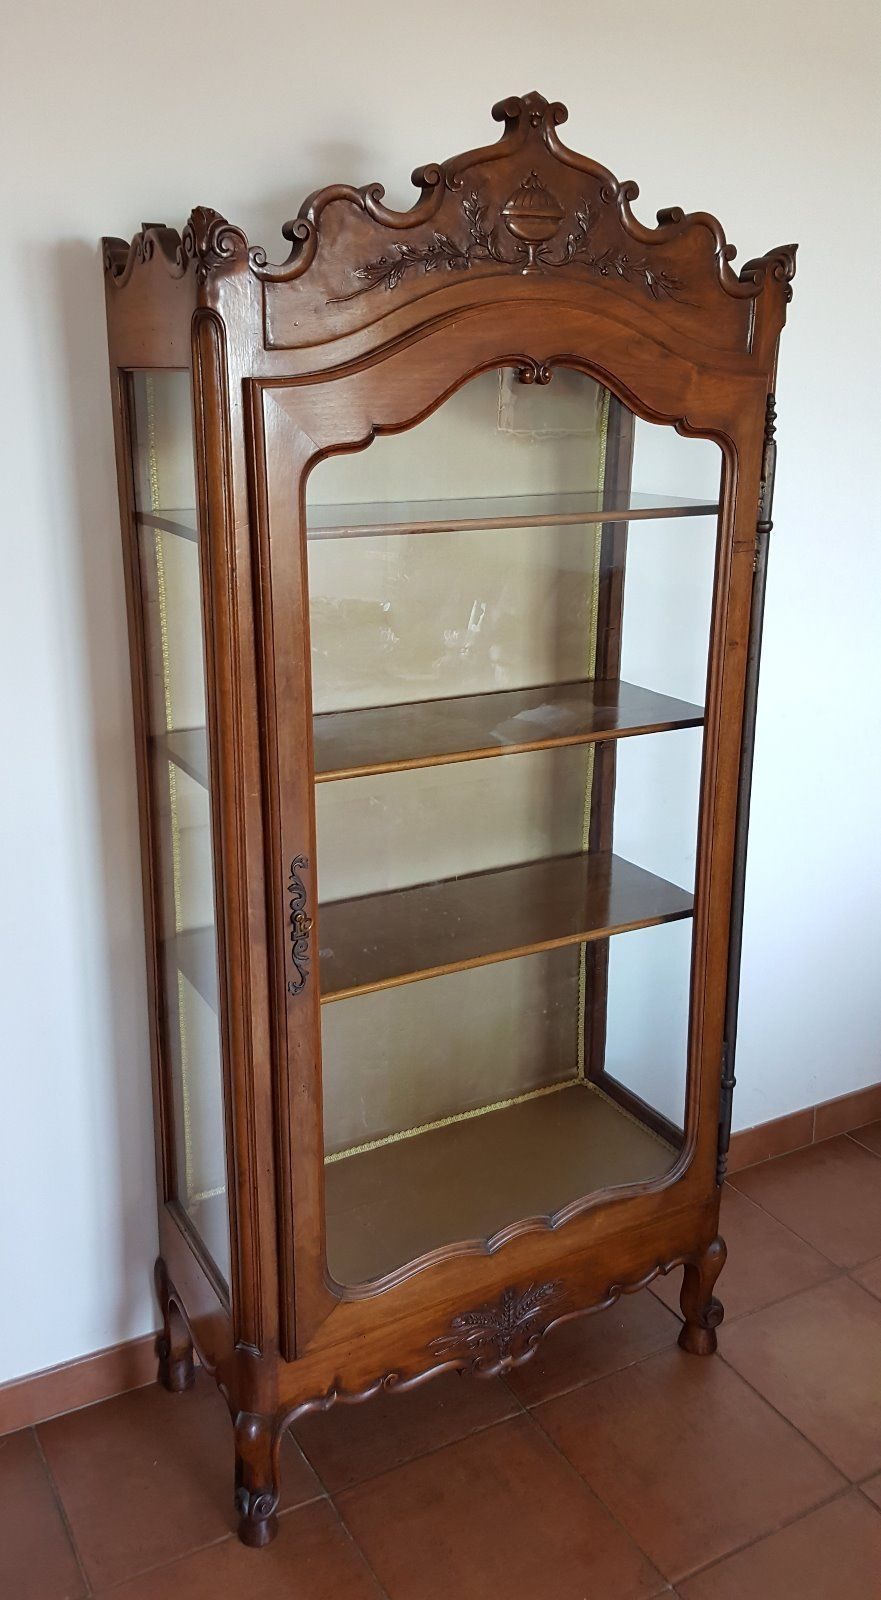 tres rare ancien meuble vitrine provencale 18 me si cle for sale eur see. Black Bedroom Furniture Sets. Home Design Ideas